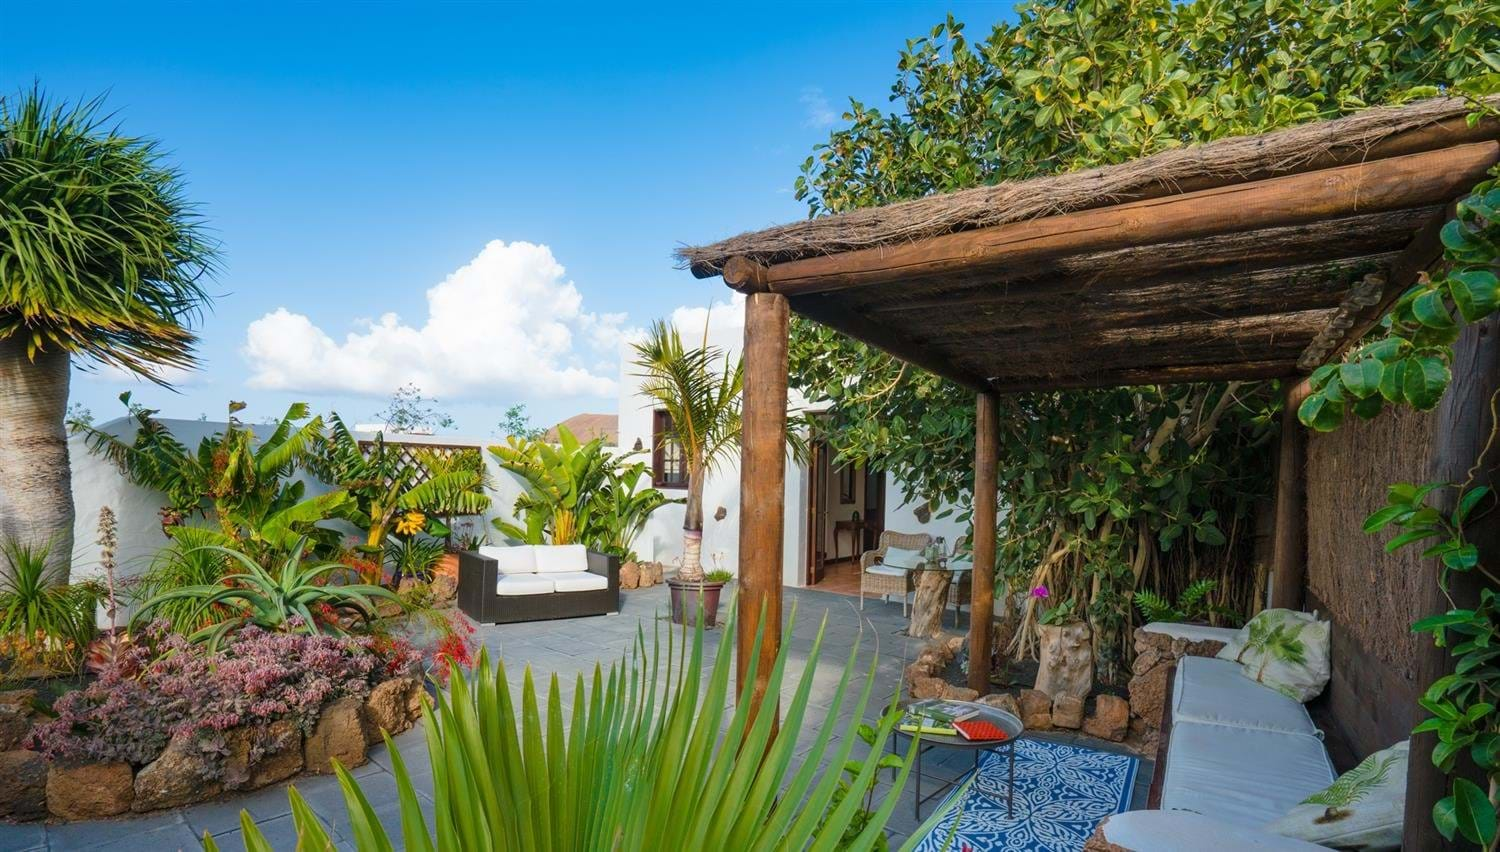 View of the garden and outdoor seating in the Garden Apartment at Finca Botanico, Lanzarote